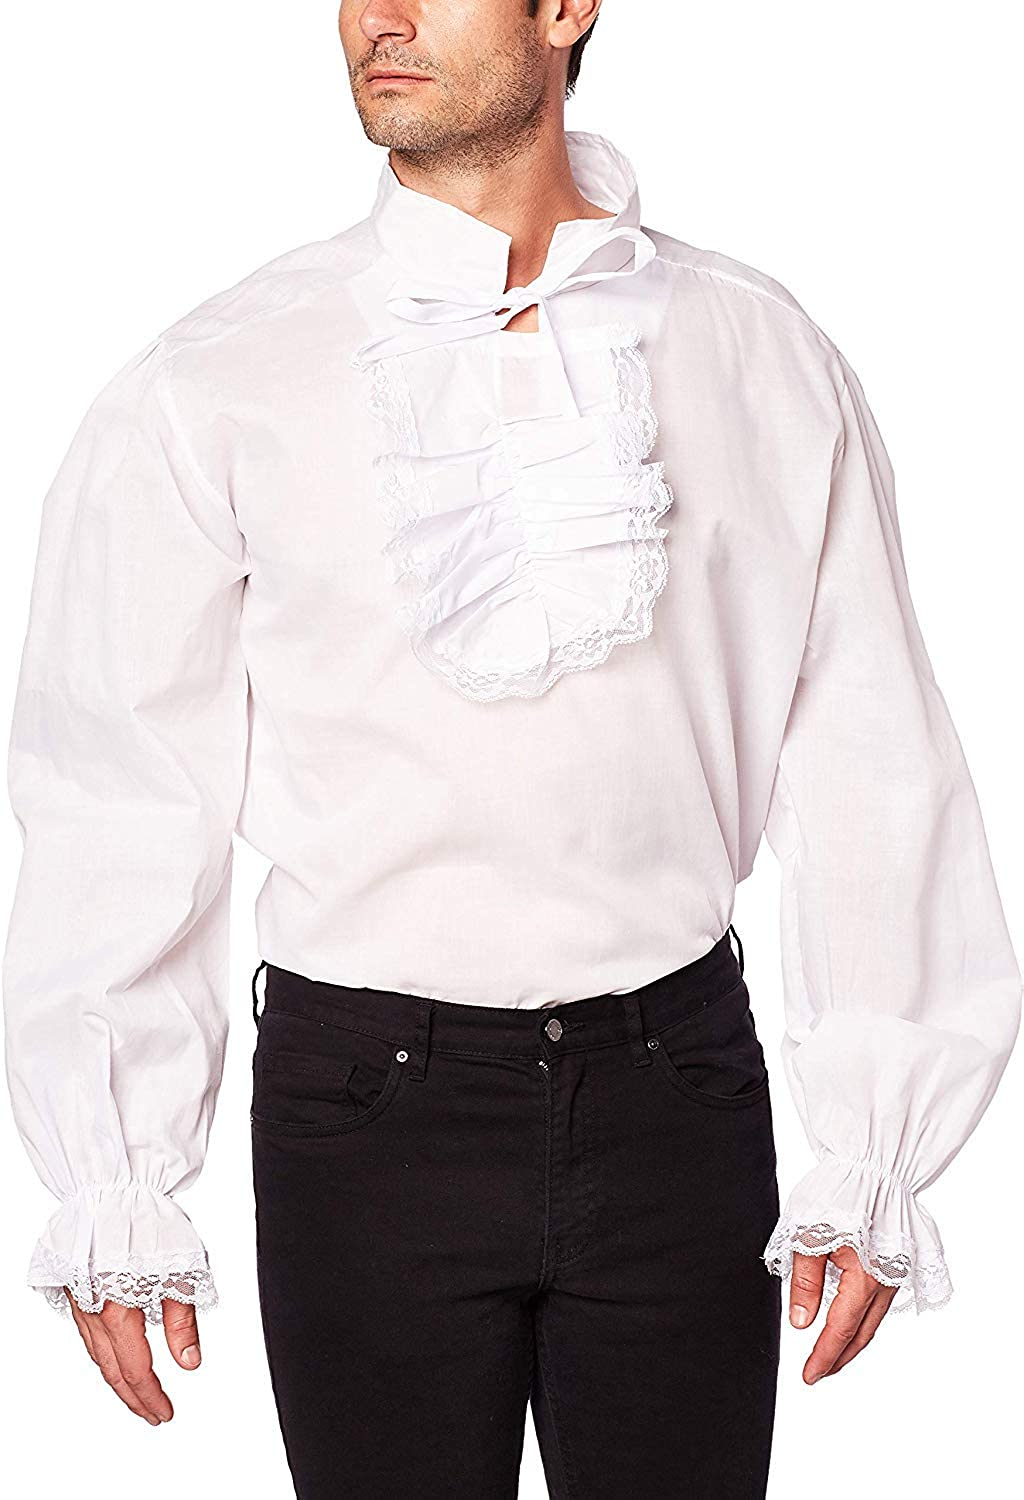 Forum Novelties Ruffled Colonial Costume Shirt